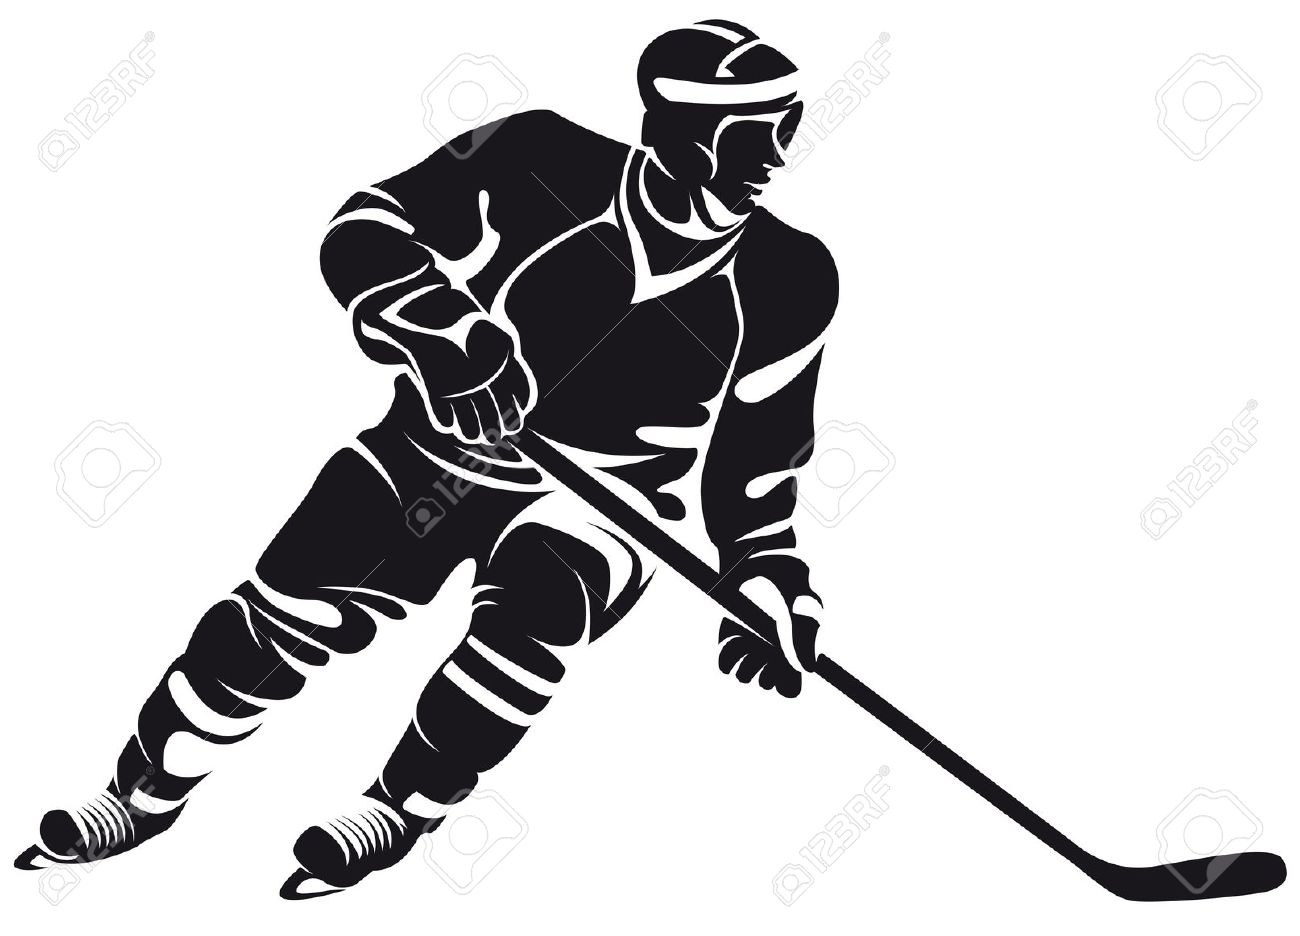 1300x936 Free Hockey Player Silhouette Clipart